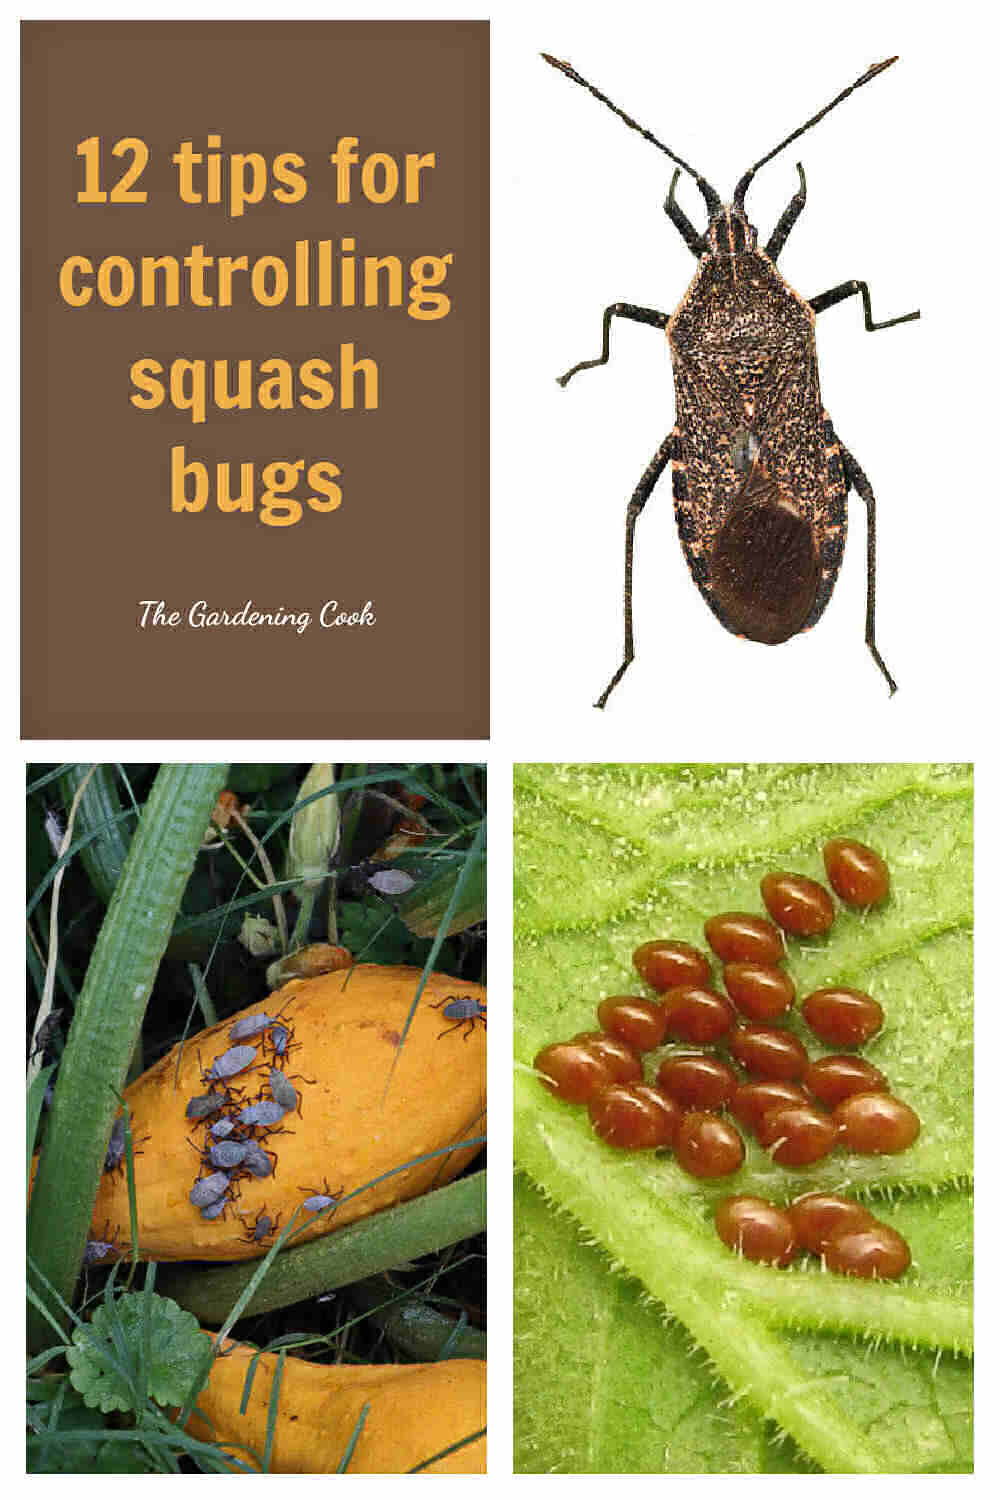 Squash bug, infestation and squash bug eggs with words reading 12 tips for controlling squash bugs.